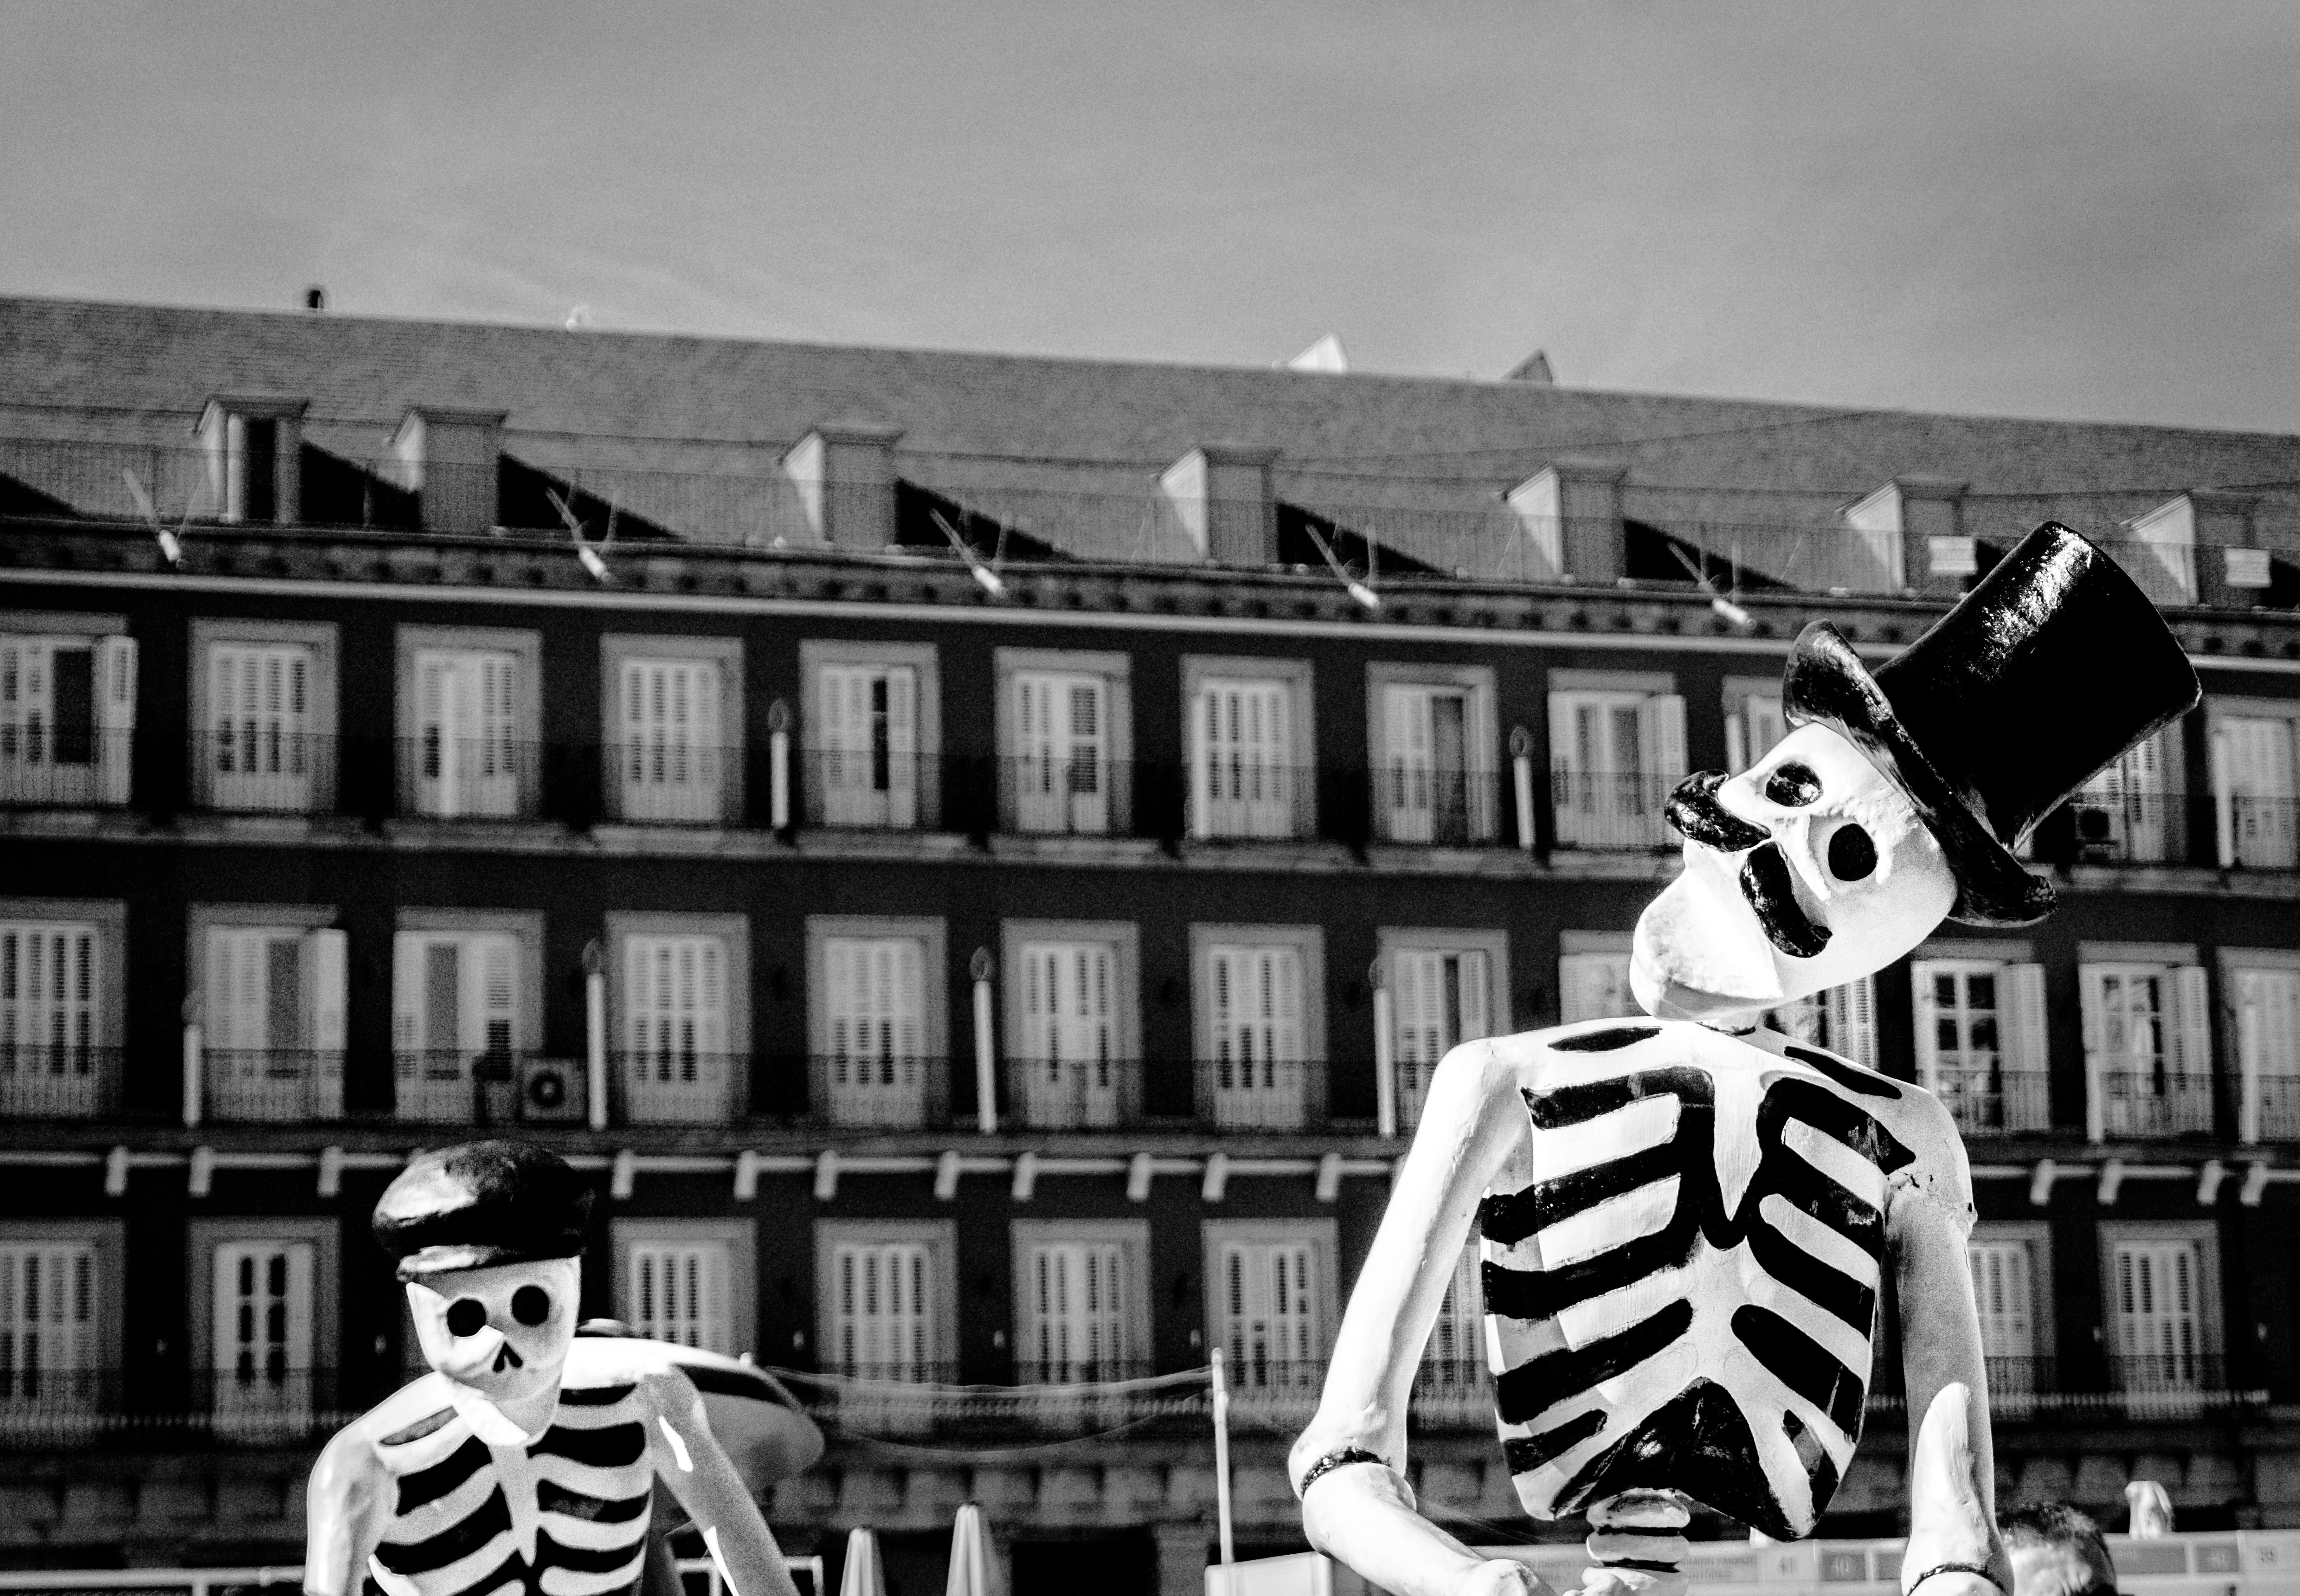 Monochrome Photo of Two Skeleton Wearing Hats